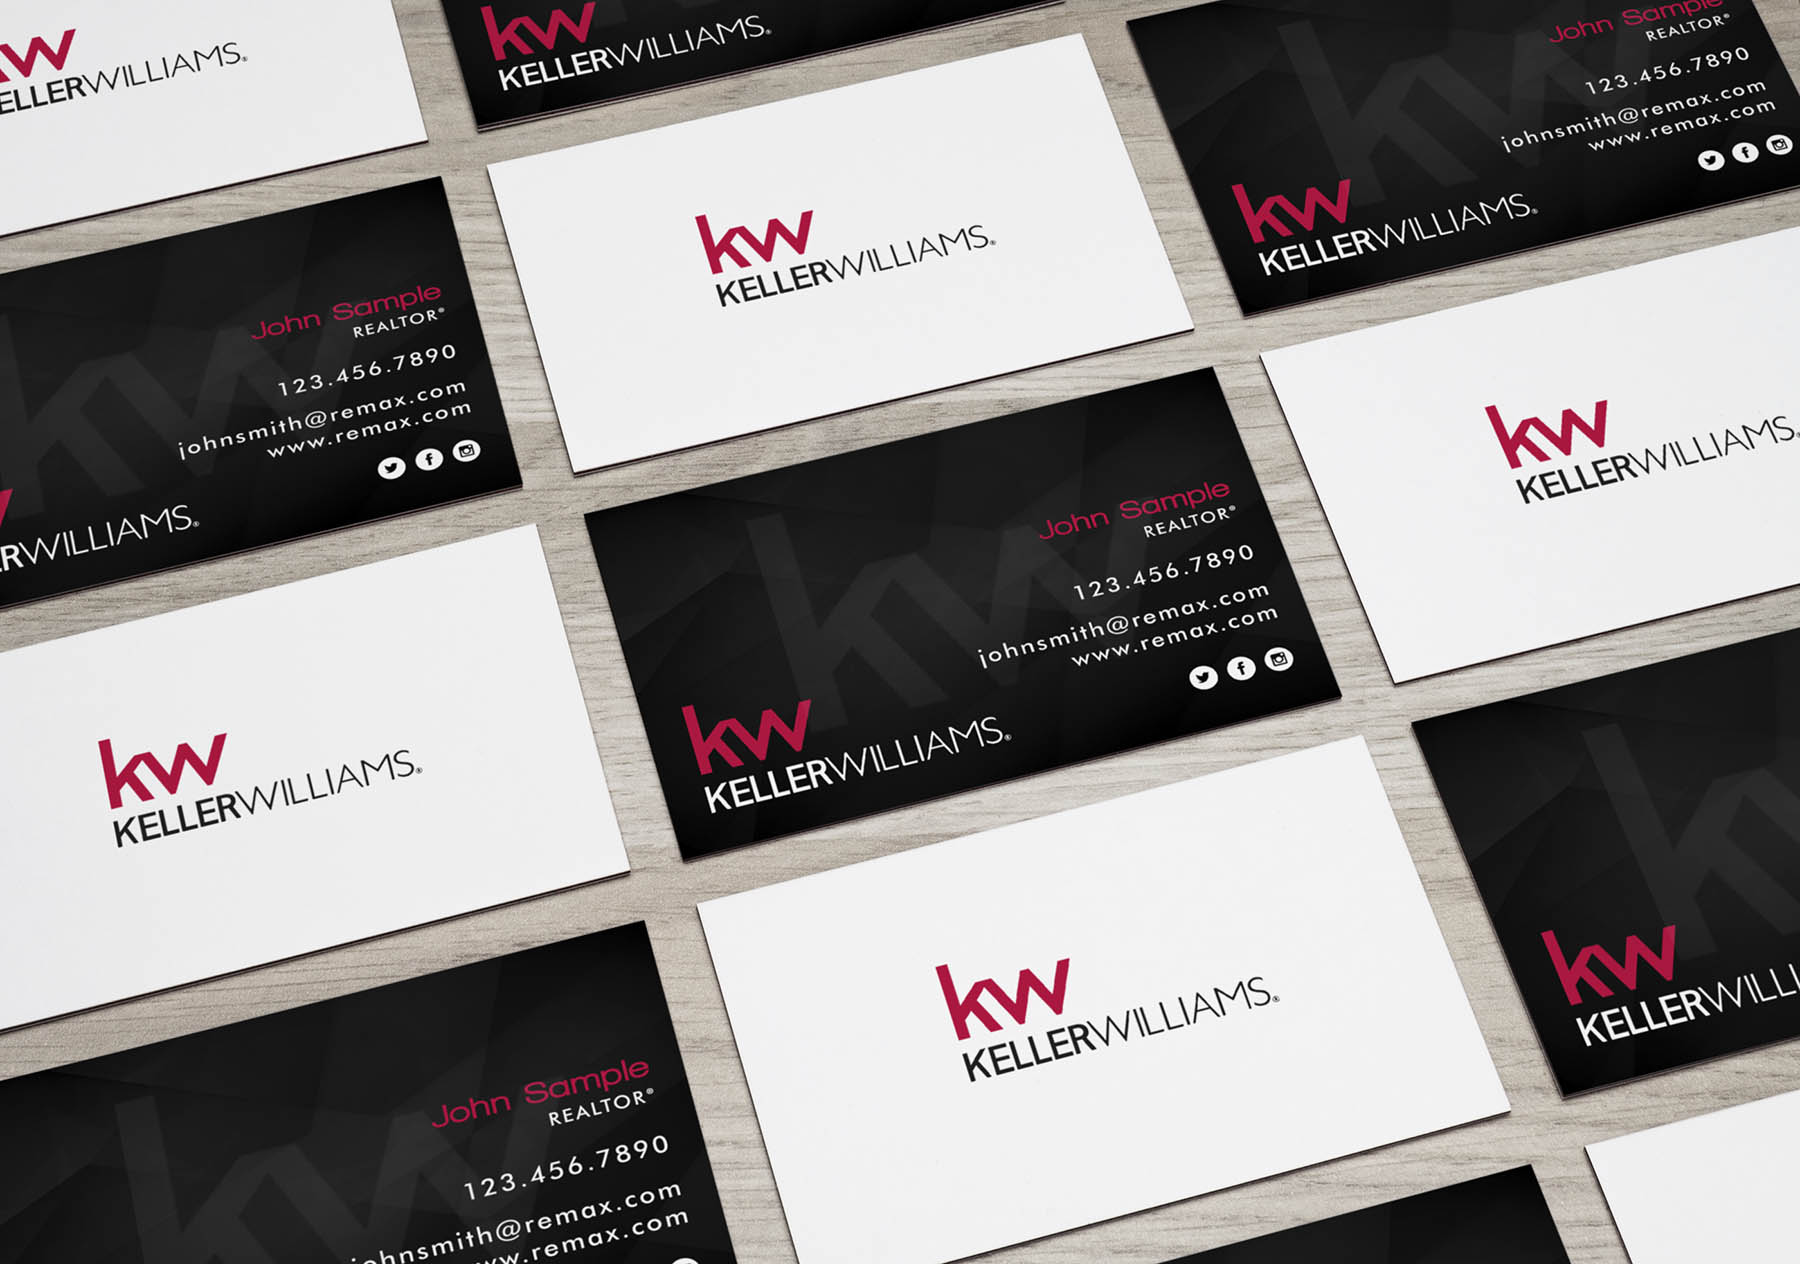 BestBusinessCards.com - Elite Laminated Business Cards and more!